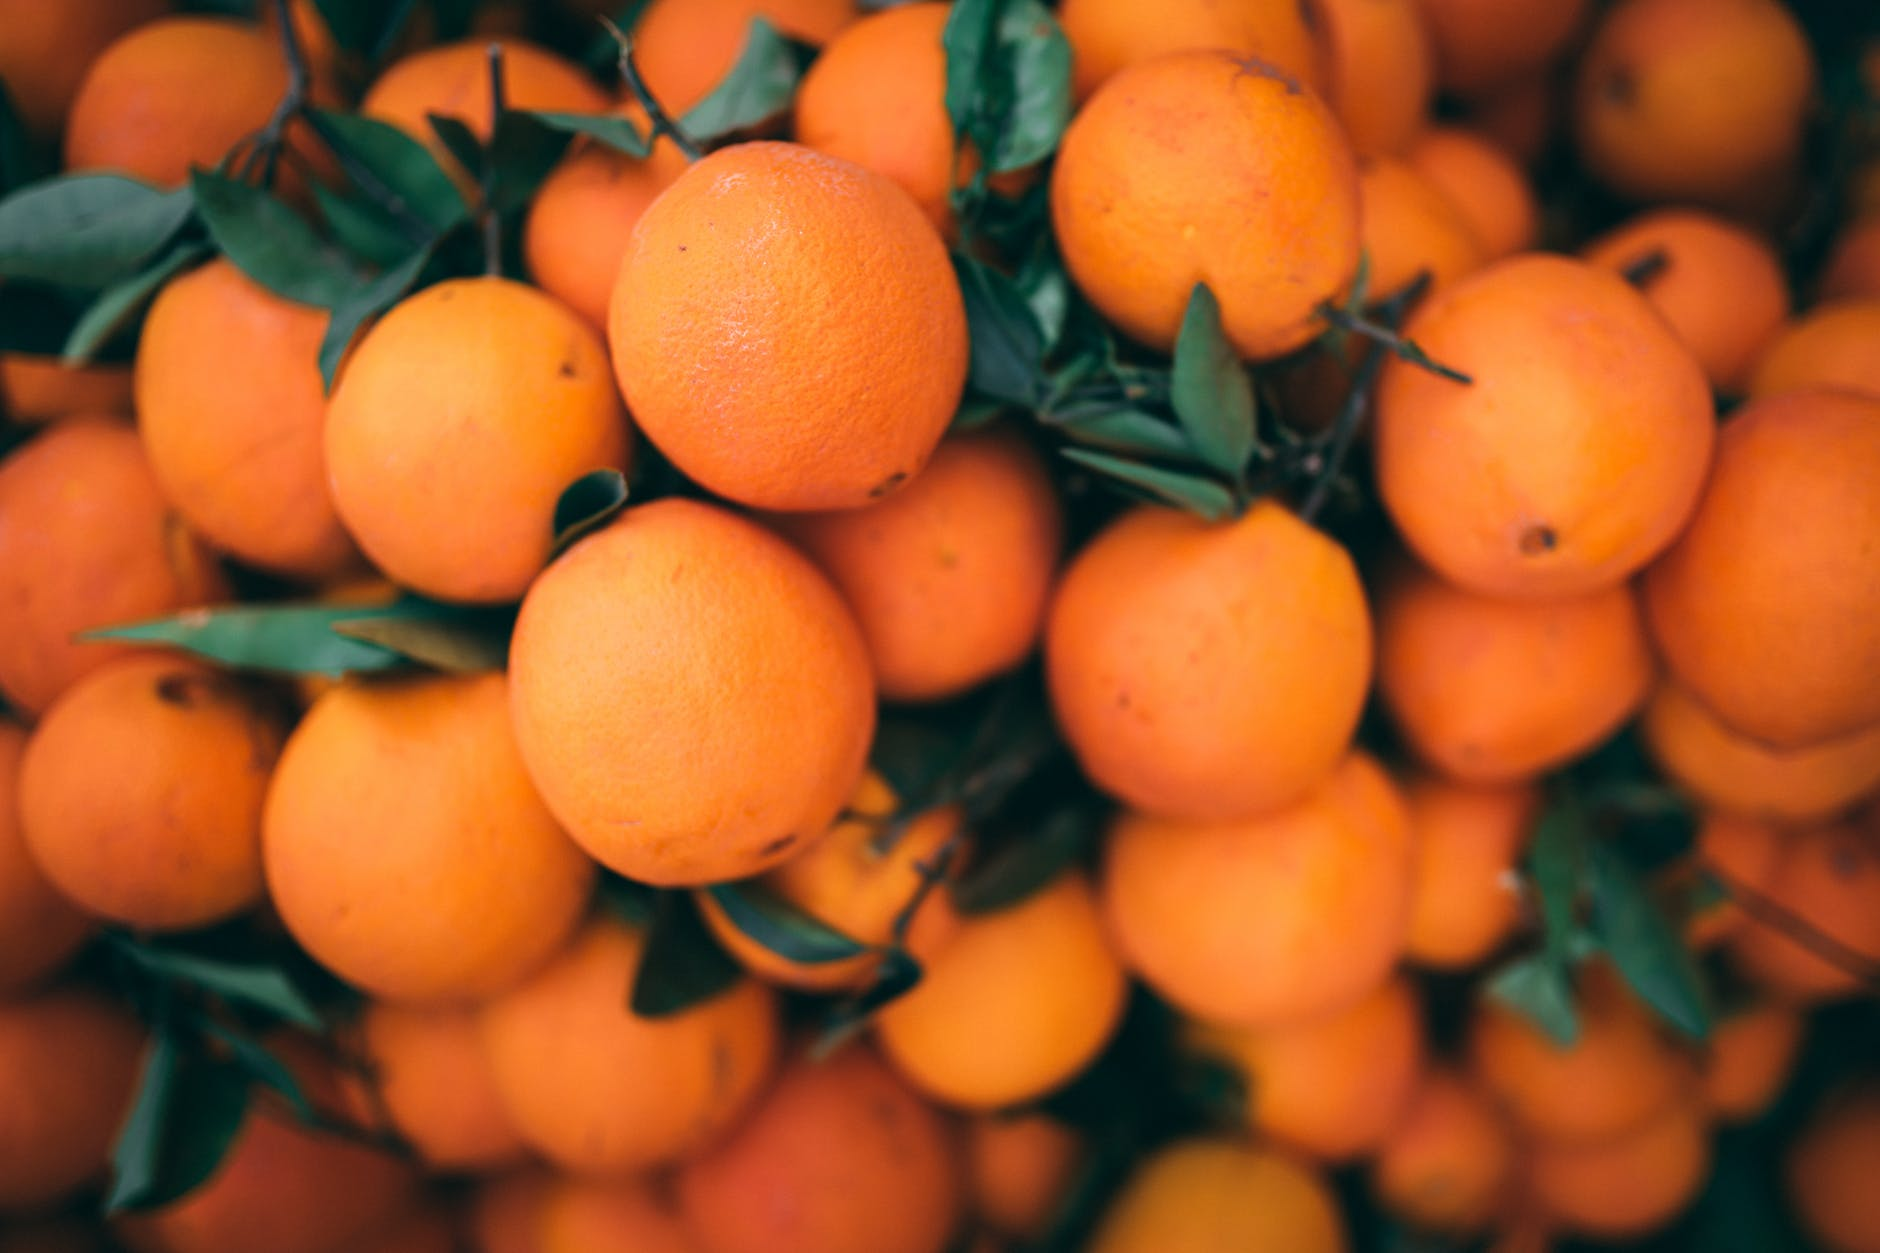 Vitamin C, oranges, immune system, benefits